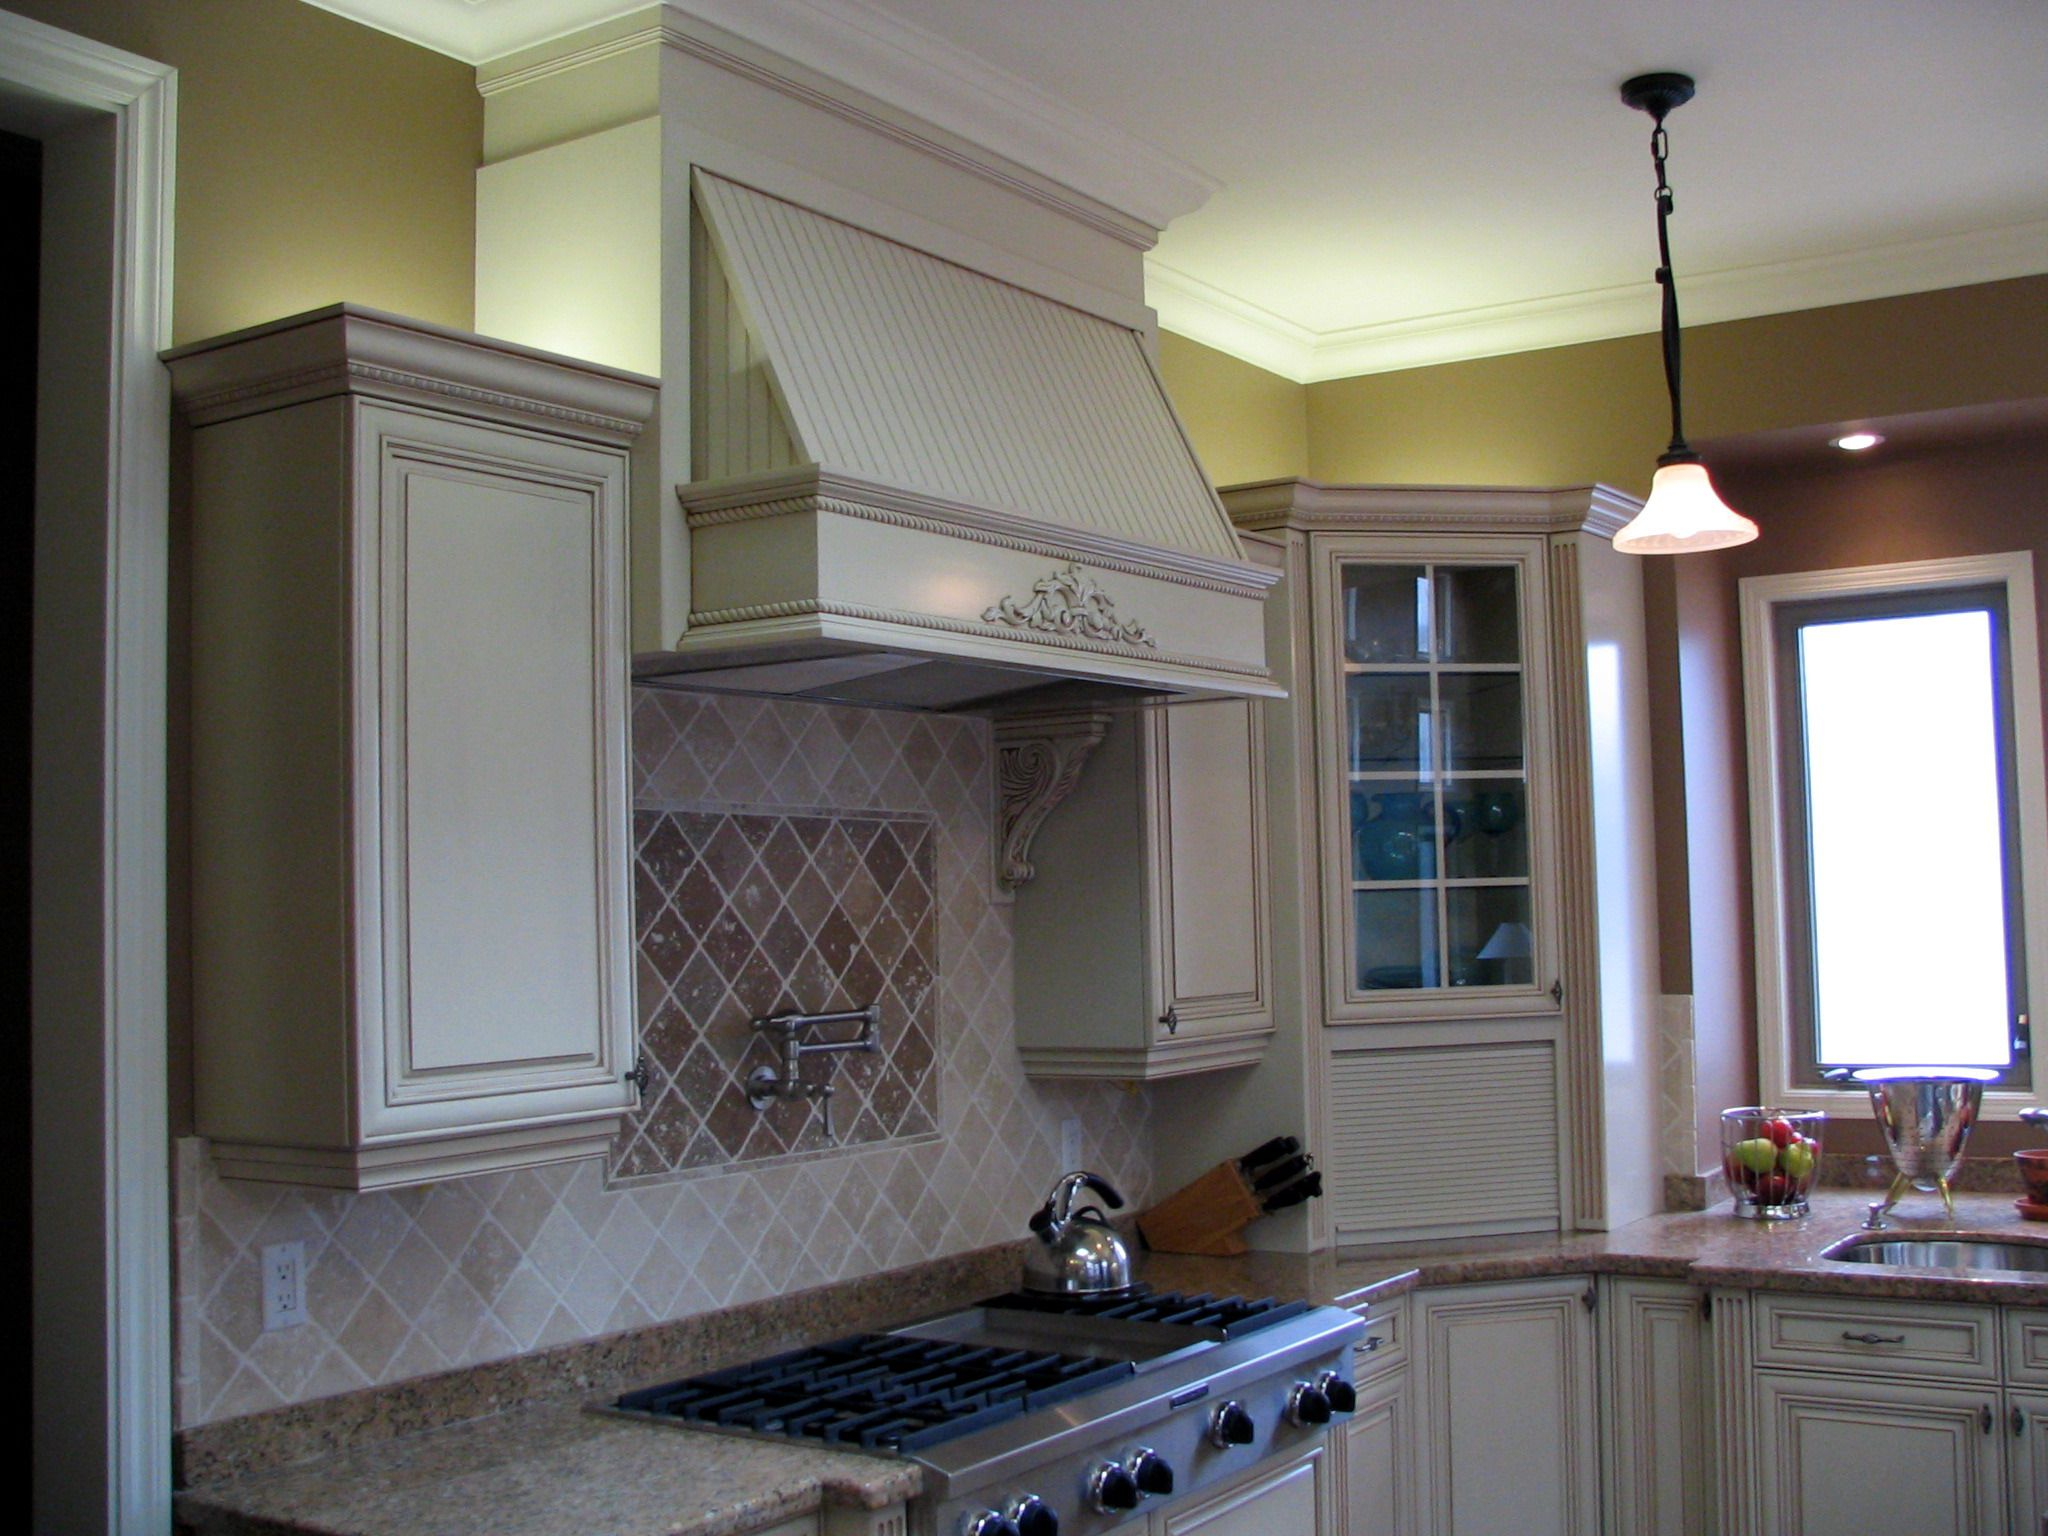 Decorative Range Hoods For Gas Stoves ~ Large decorative range hood above quot gas cooktop note